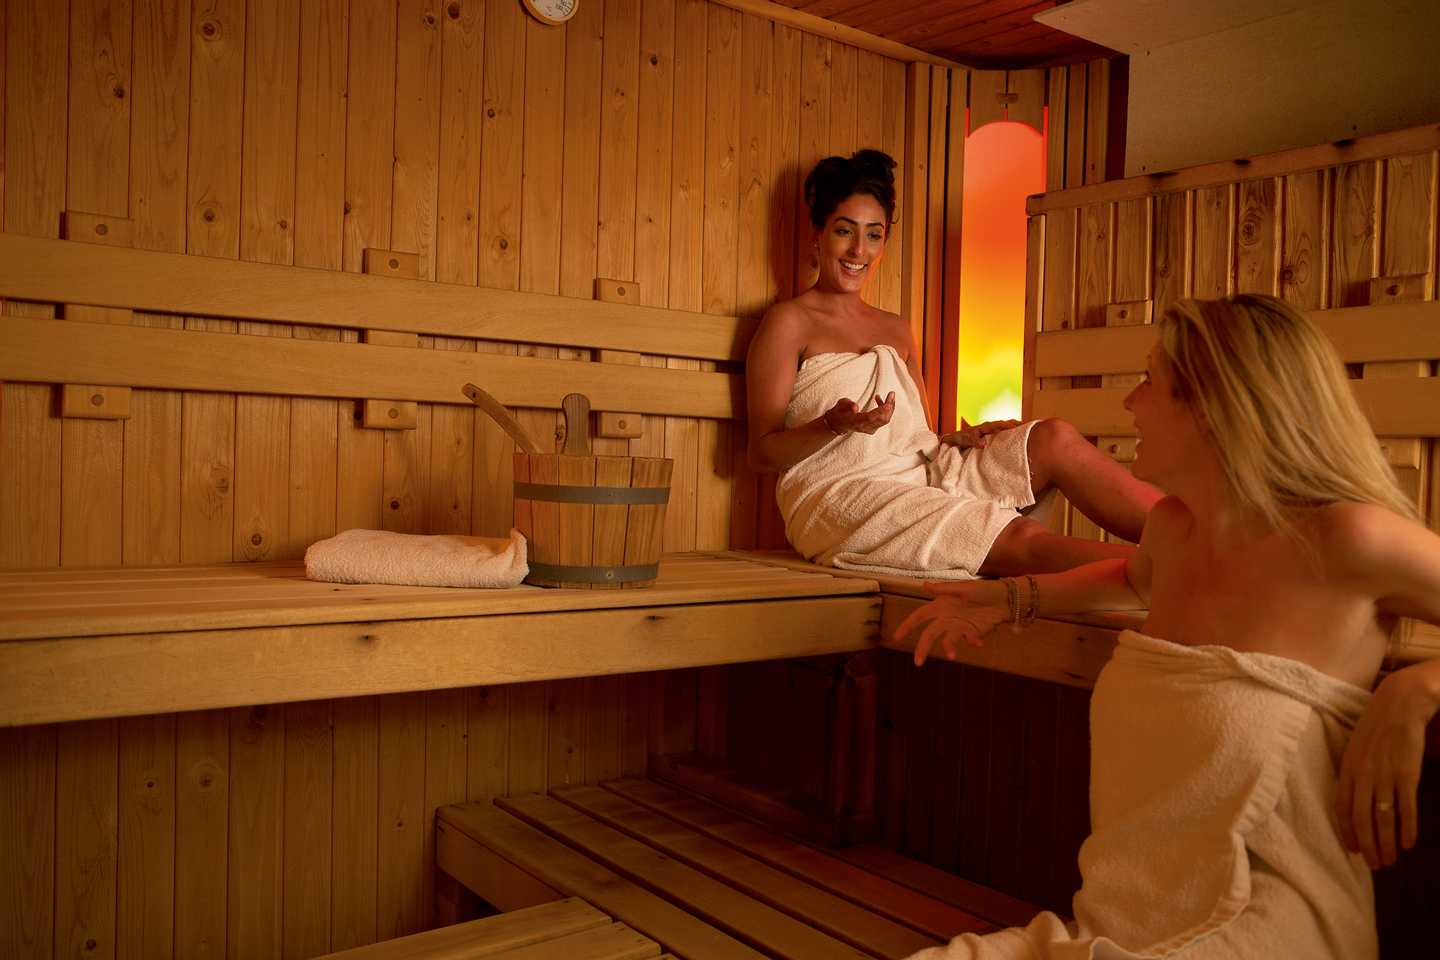 Owners relaxing in the sauna